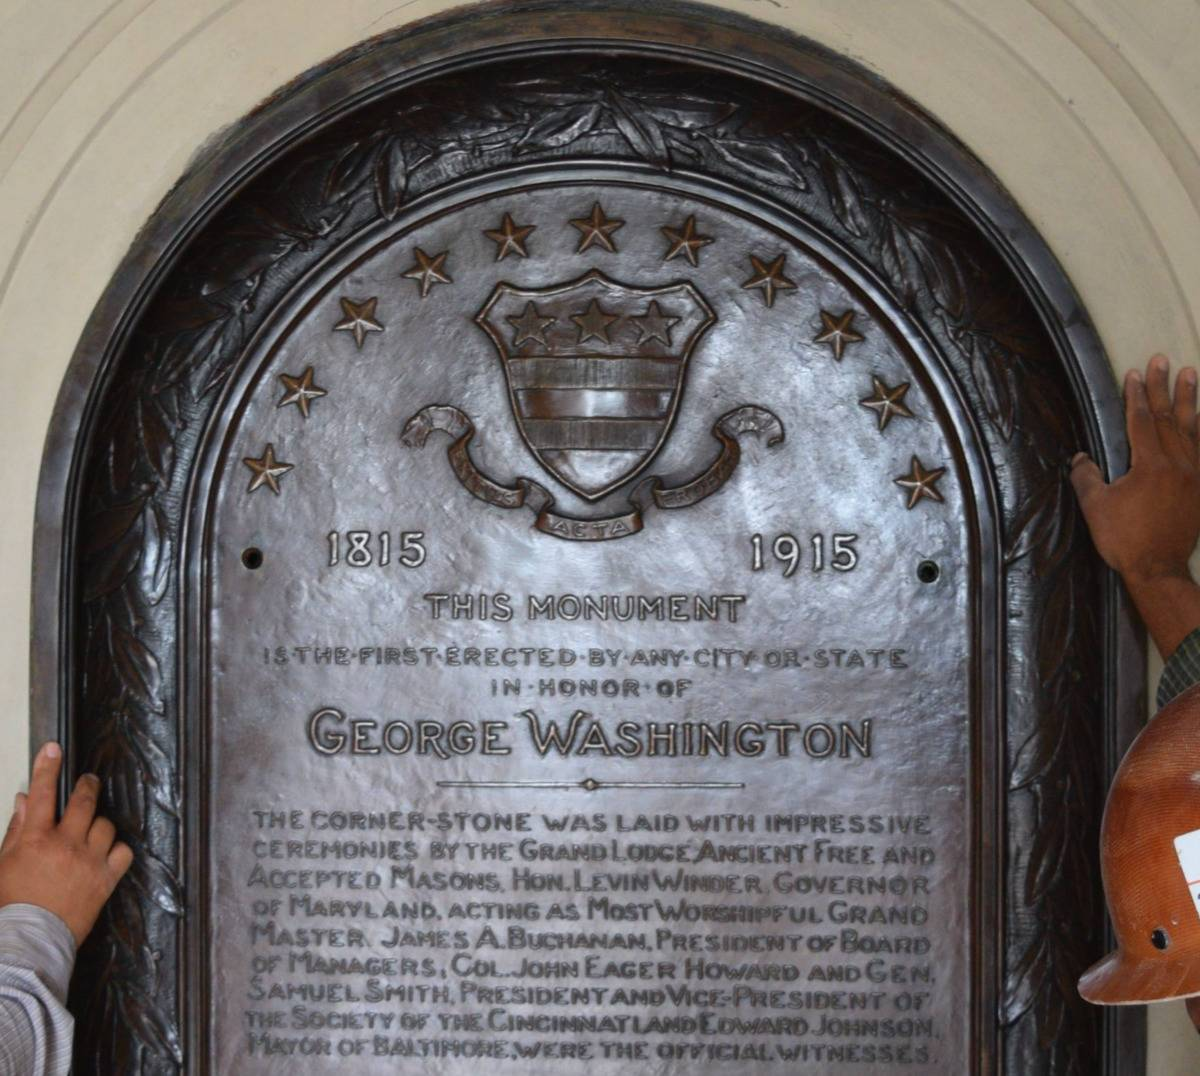 The original plaque from 1915 is held up.